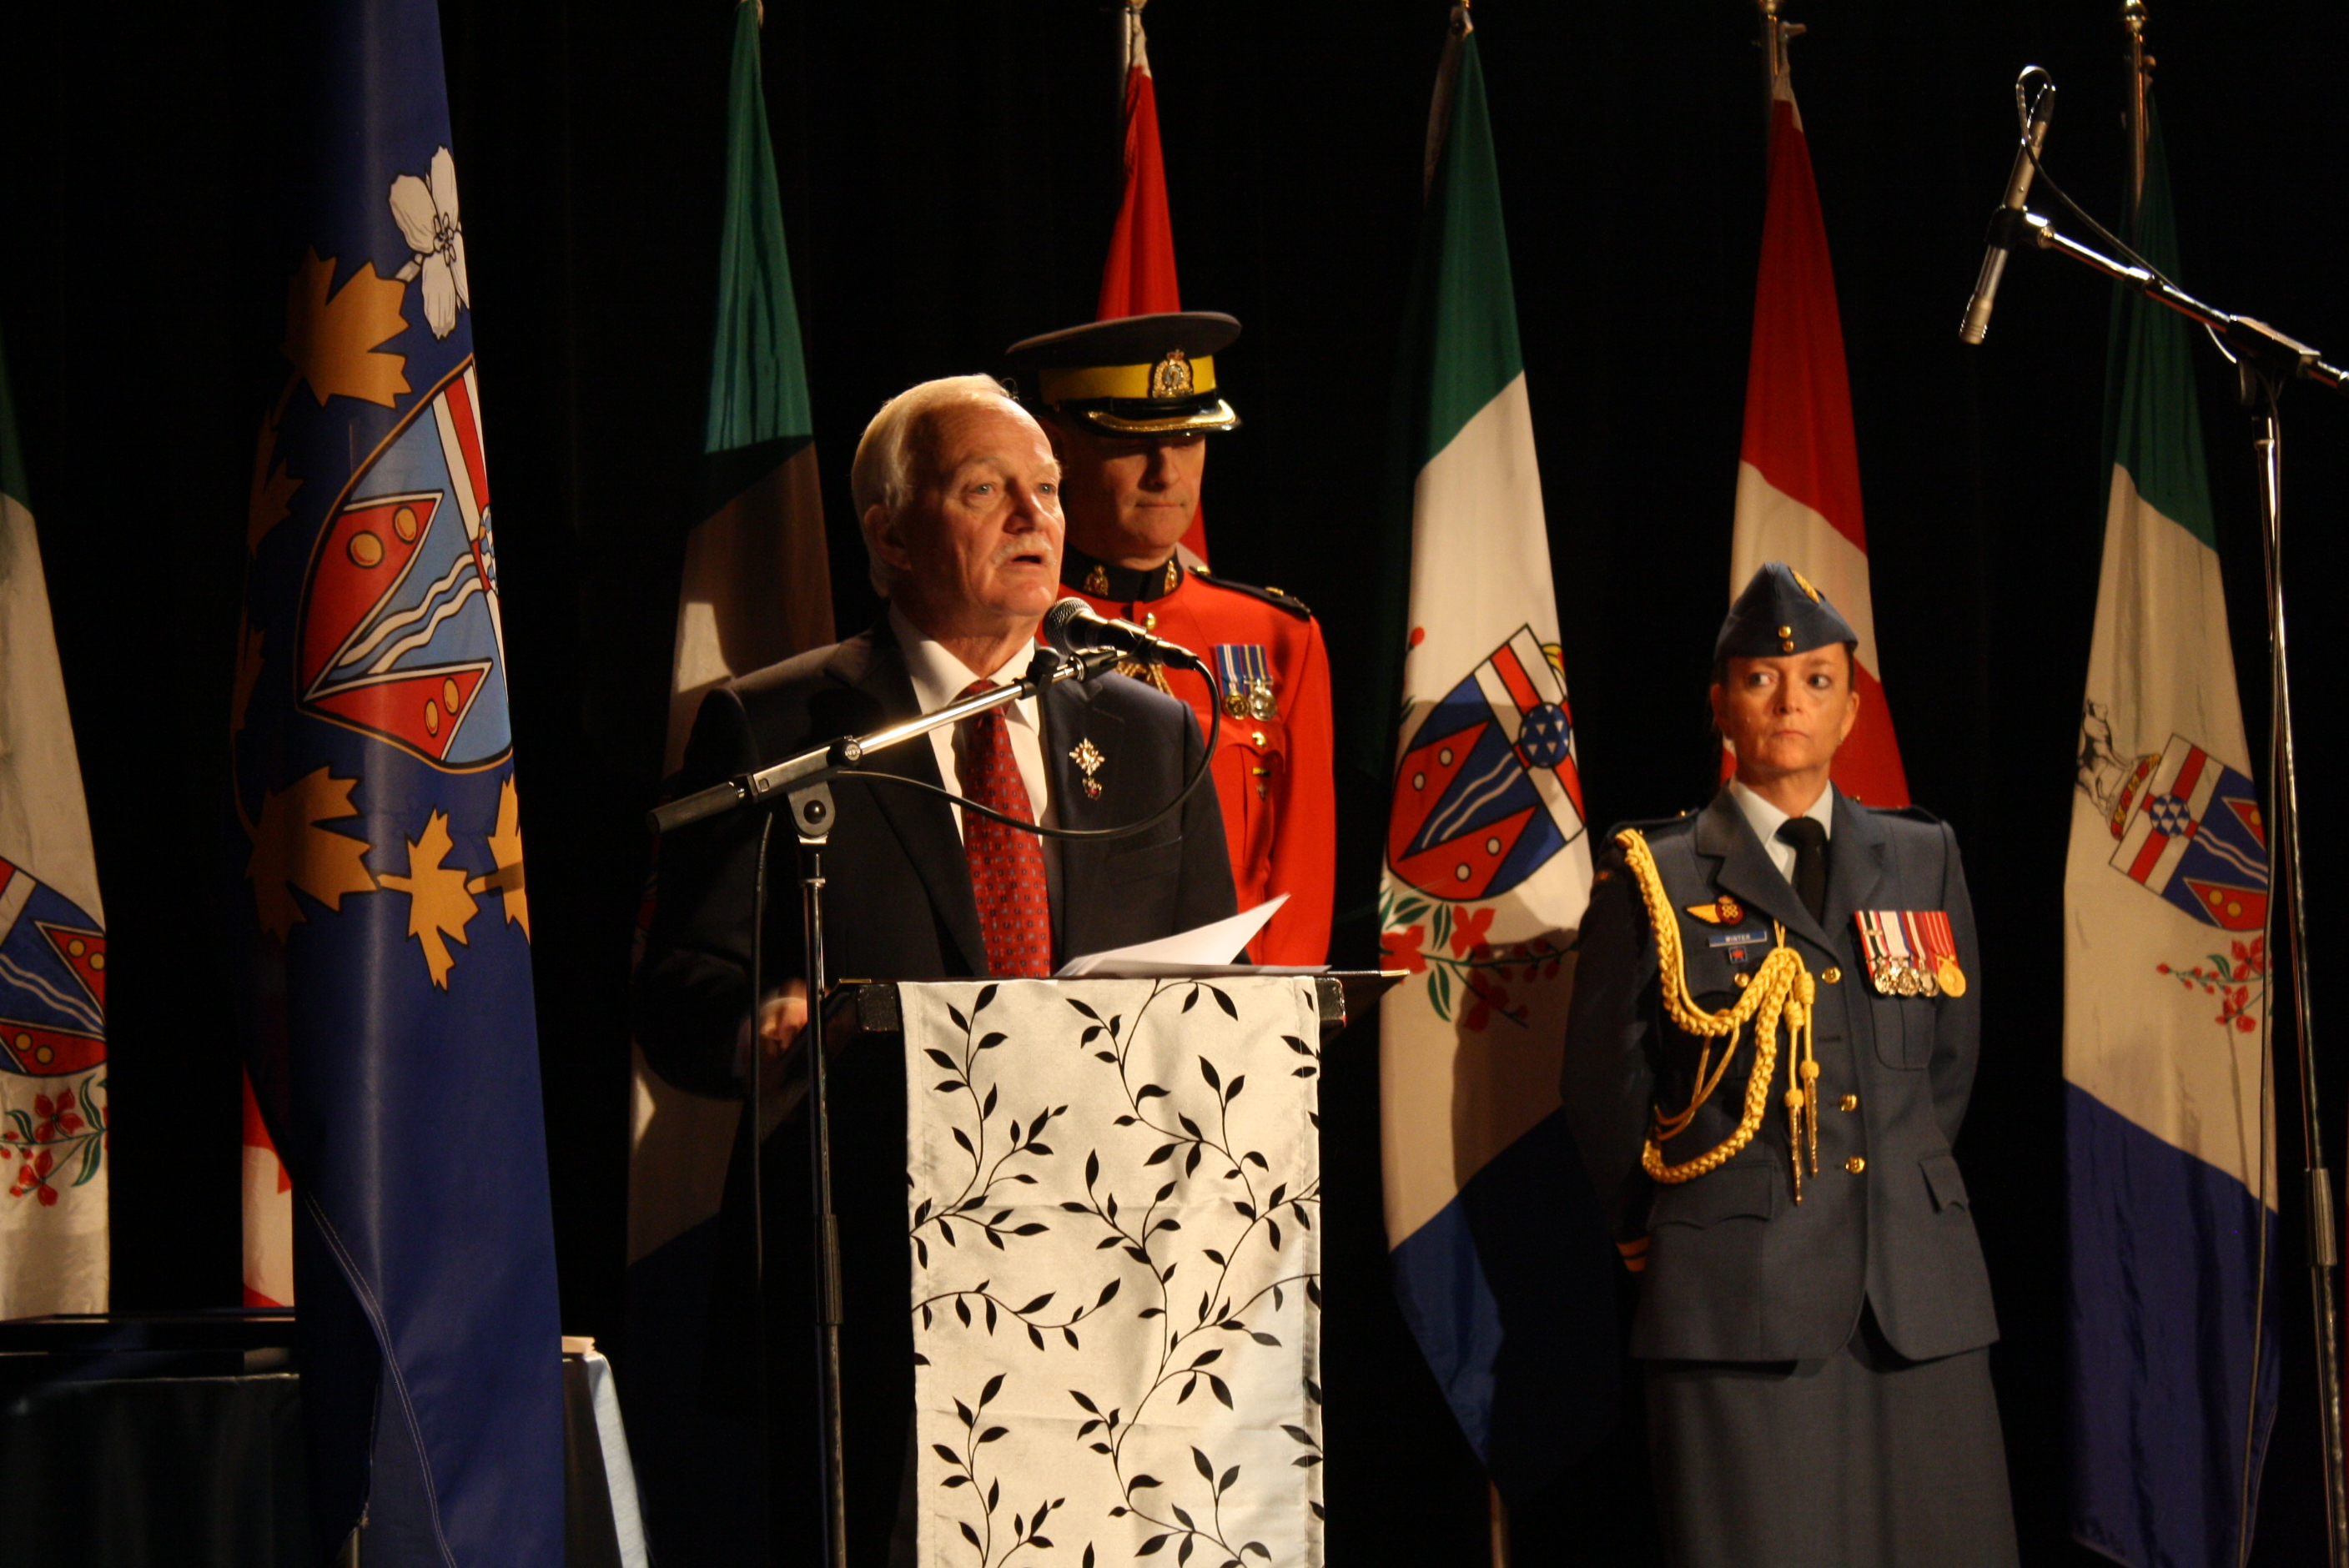 The Commissioner of Yukon, the Honourable Doug Phillips speaking at the concert. (Photo: Alina Dragomir/ Yukon Times)